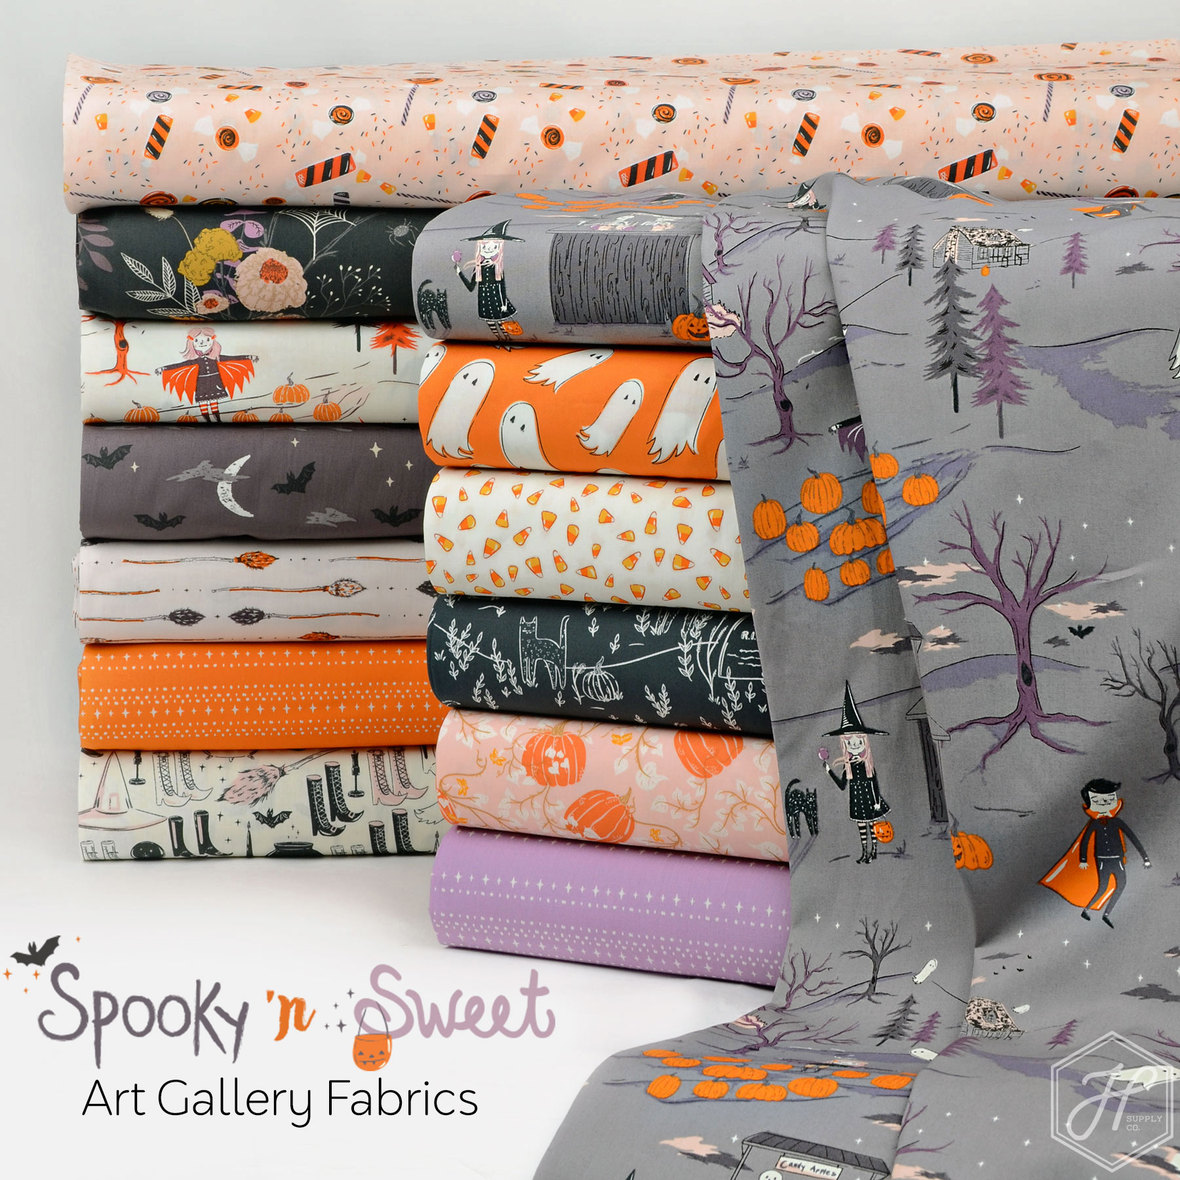 Spooky-n-Sweet-fabric-Art-Gallery-at-Hawthorne-Supply-Co